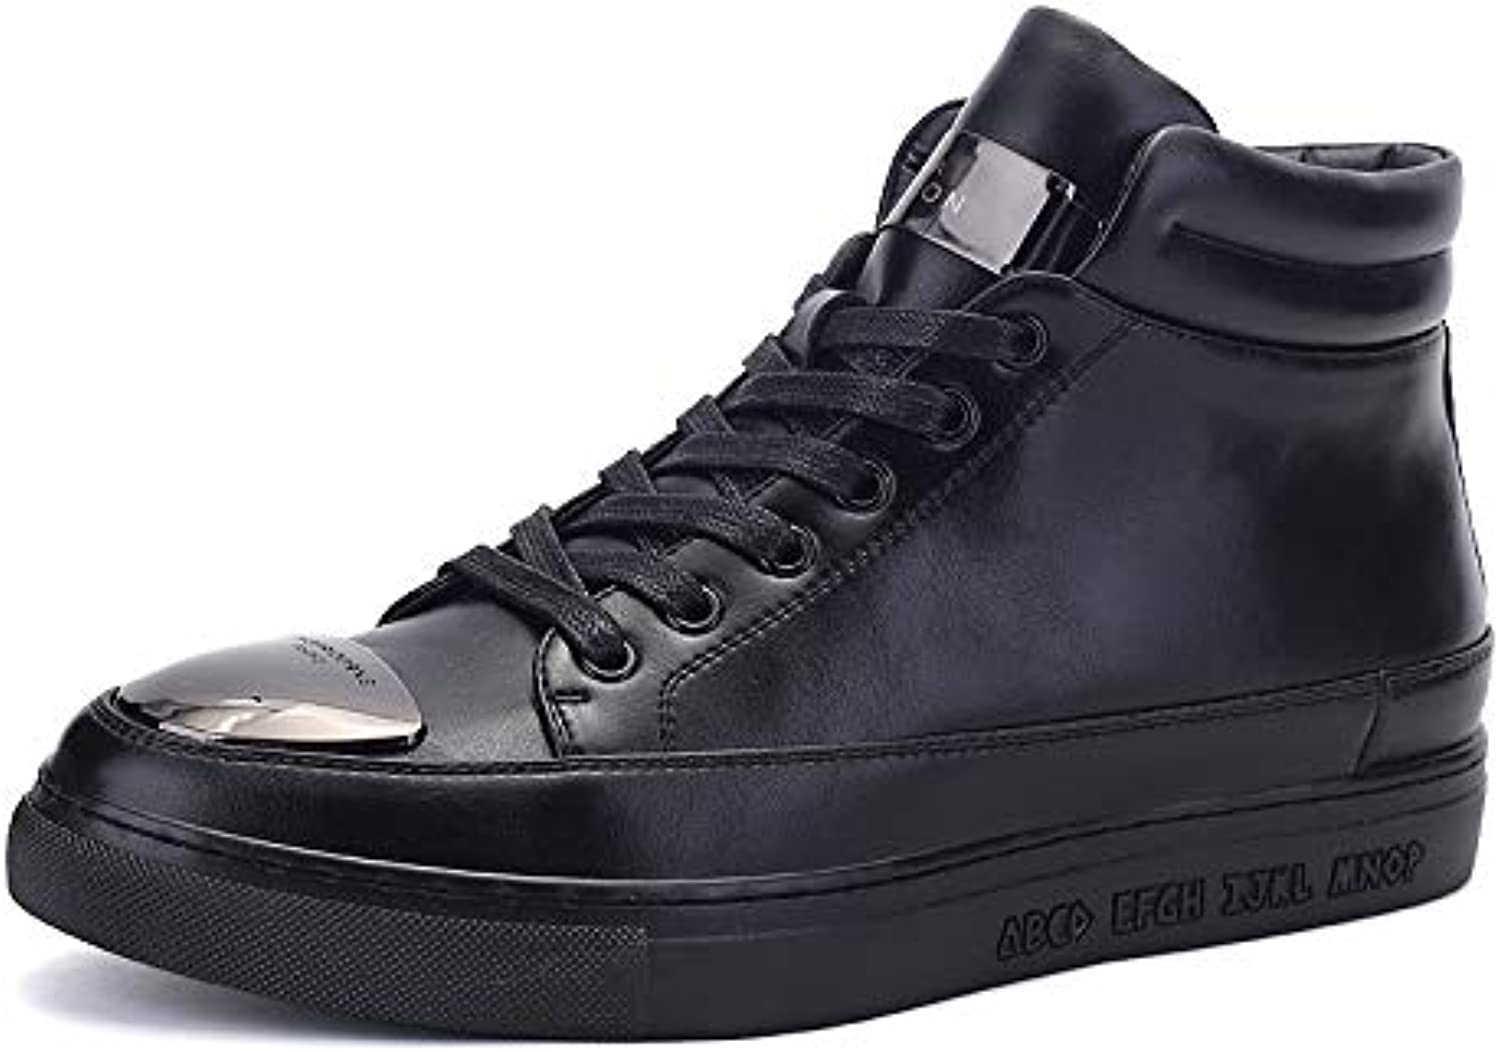 LOVDRAM Men'S Leather shoes Autumn And Winter Men'S Tooling Boots Leather Breathable Casual Men'S shoes Leather Boots Wear-Resistant Non-Slip Boots